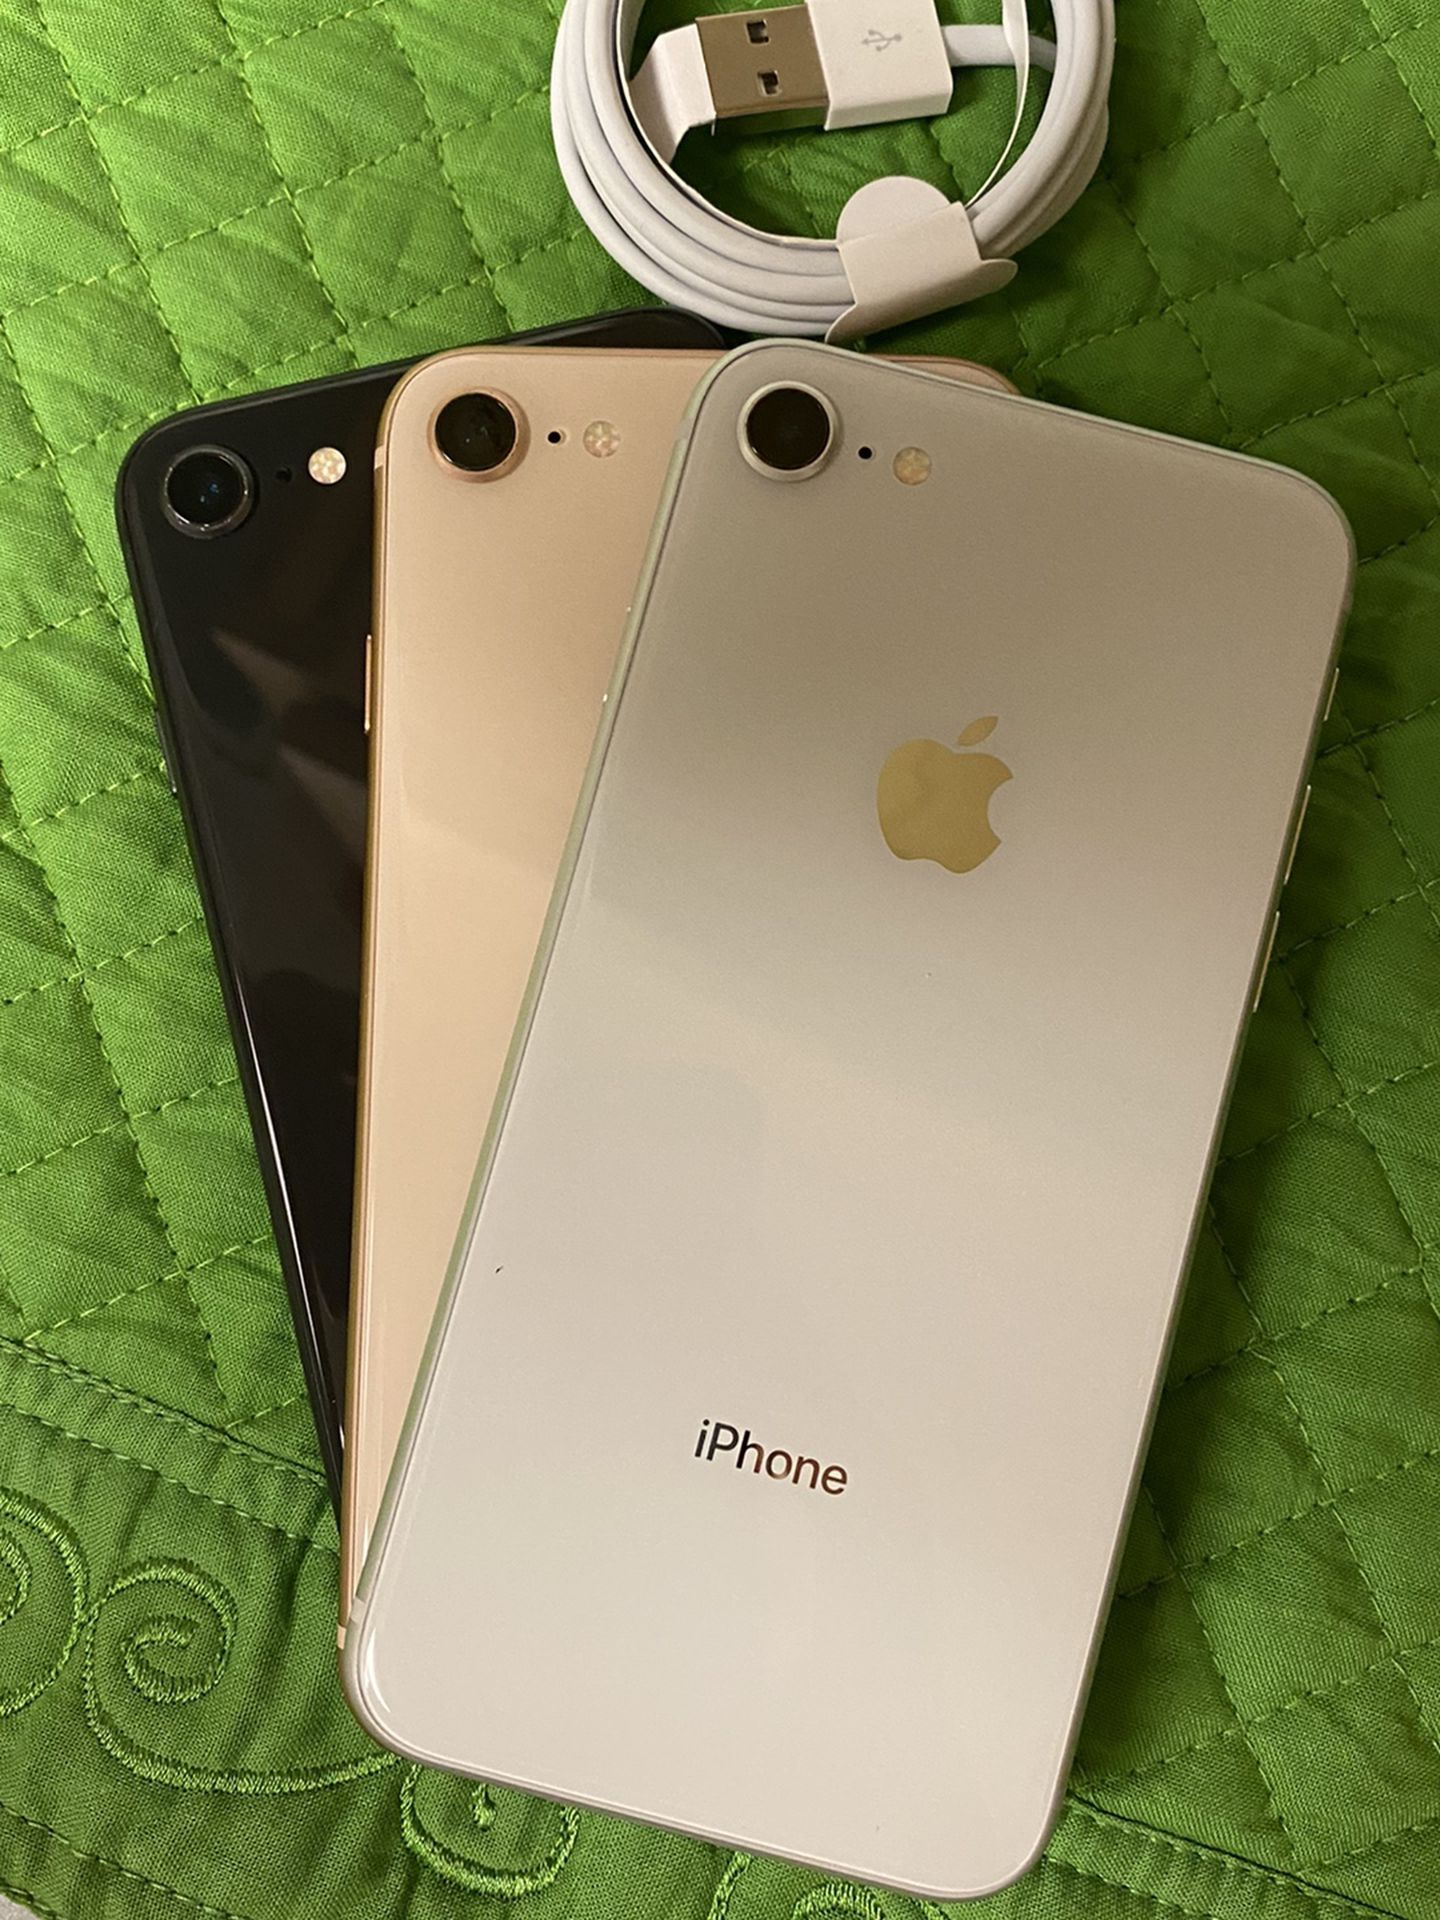 iPhone 8 Unlocked For All Carriers